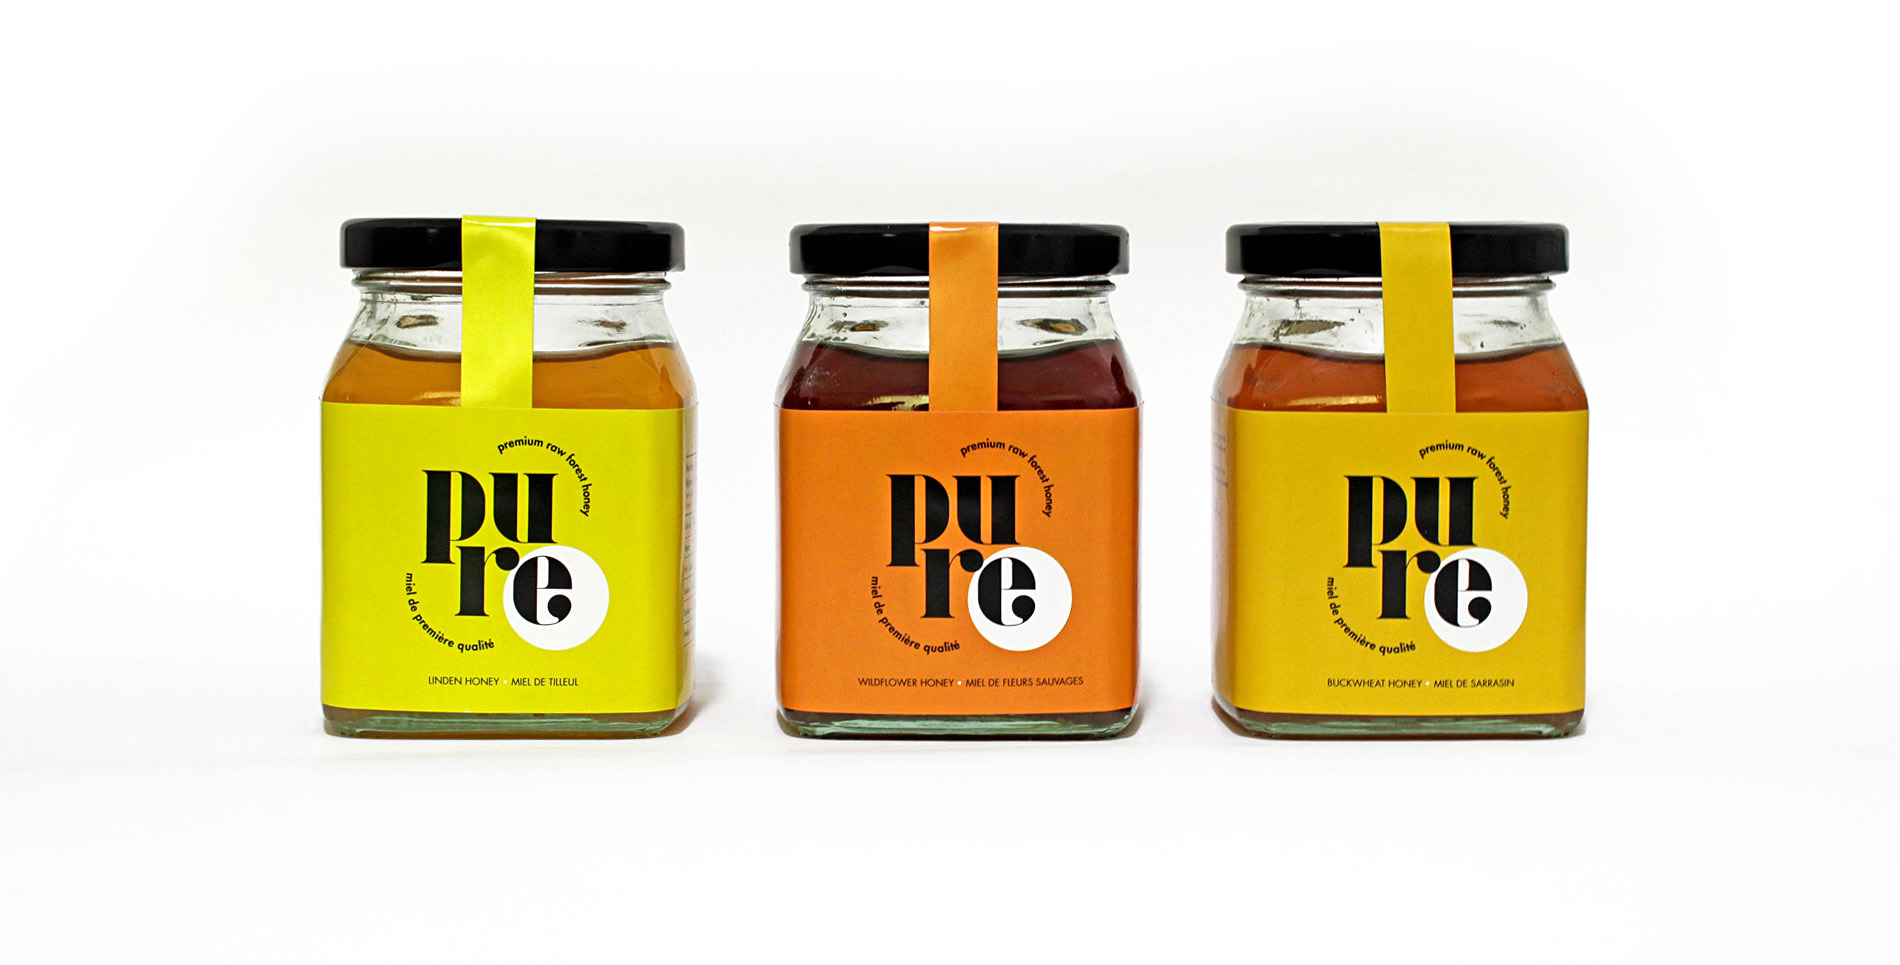 Three Pure honey bottles side by side